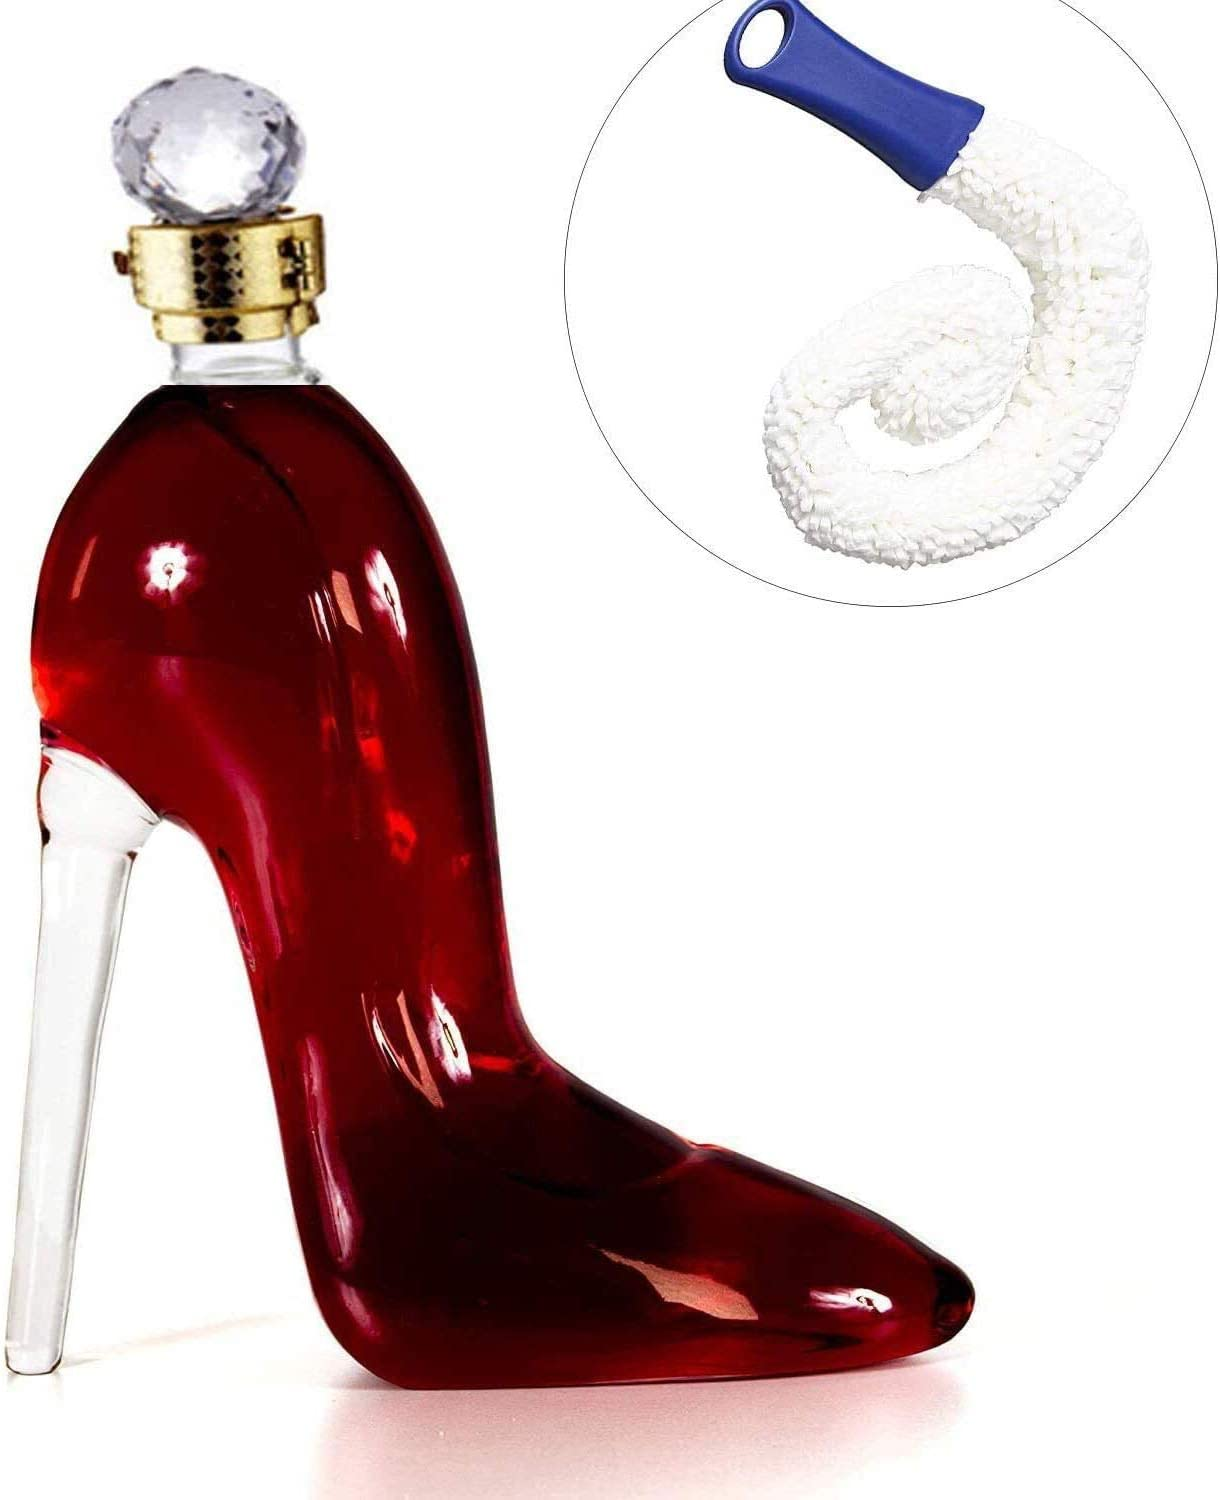 DONGSHUAI 750ML Exquisite Decanter with Diamond Stop an Ranking integrated 1st place Finally resale start Airtight